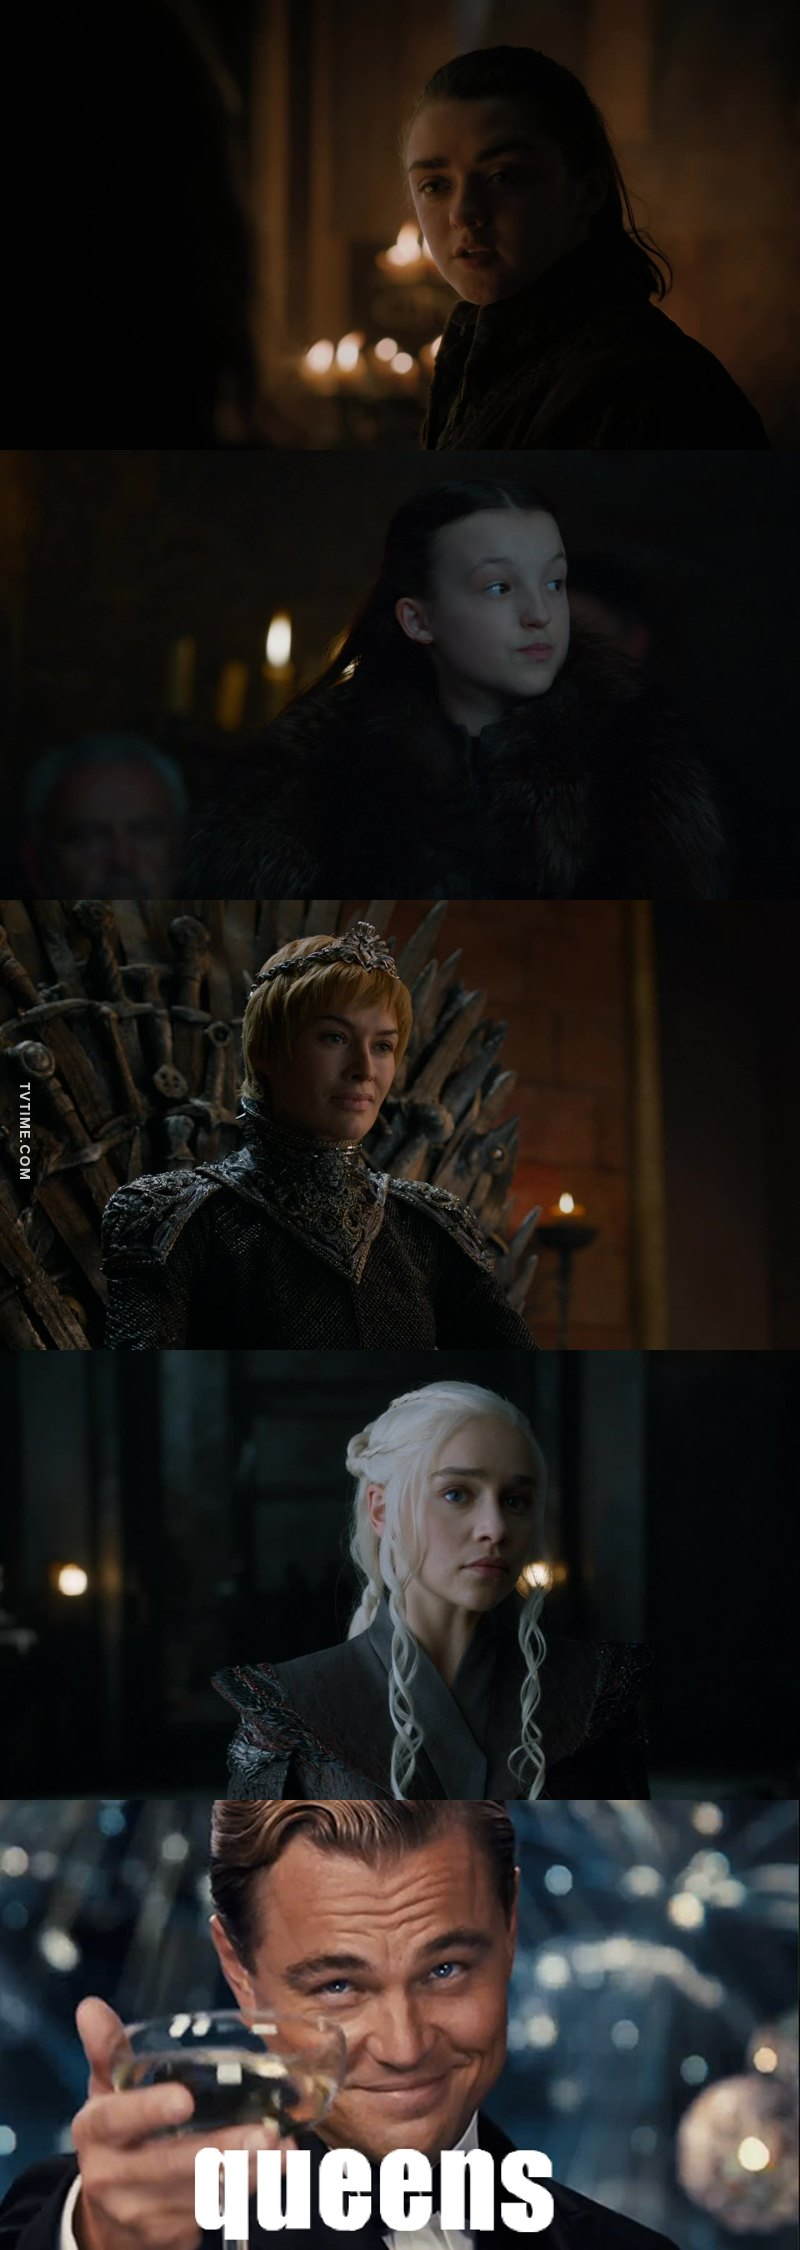 Interesting that the 4 most gangsta characters on GOT are women